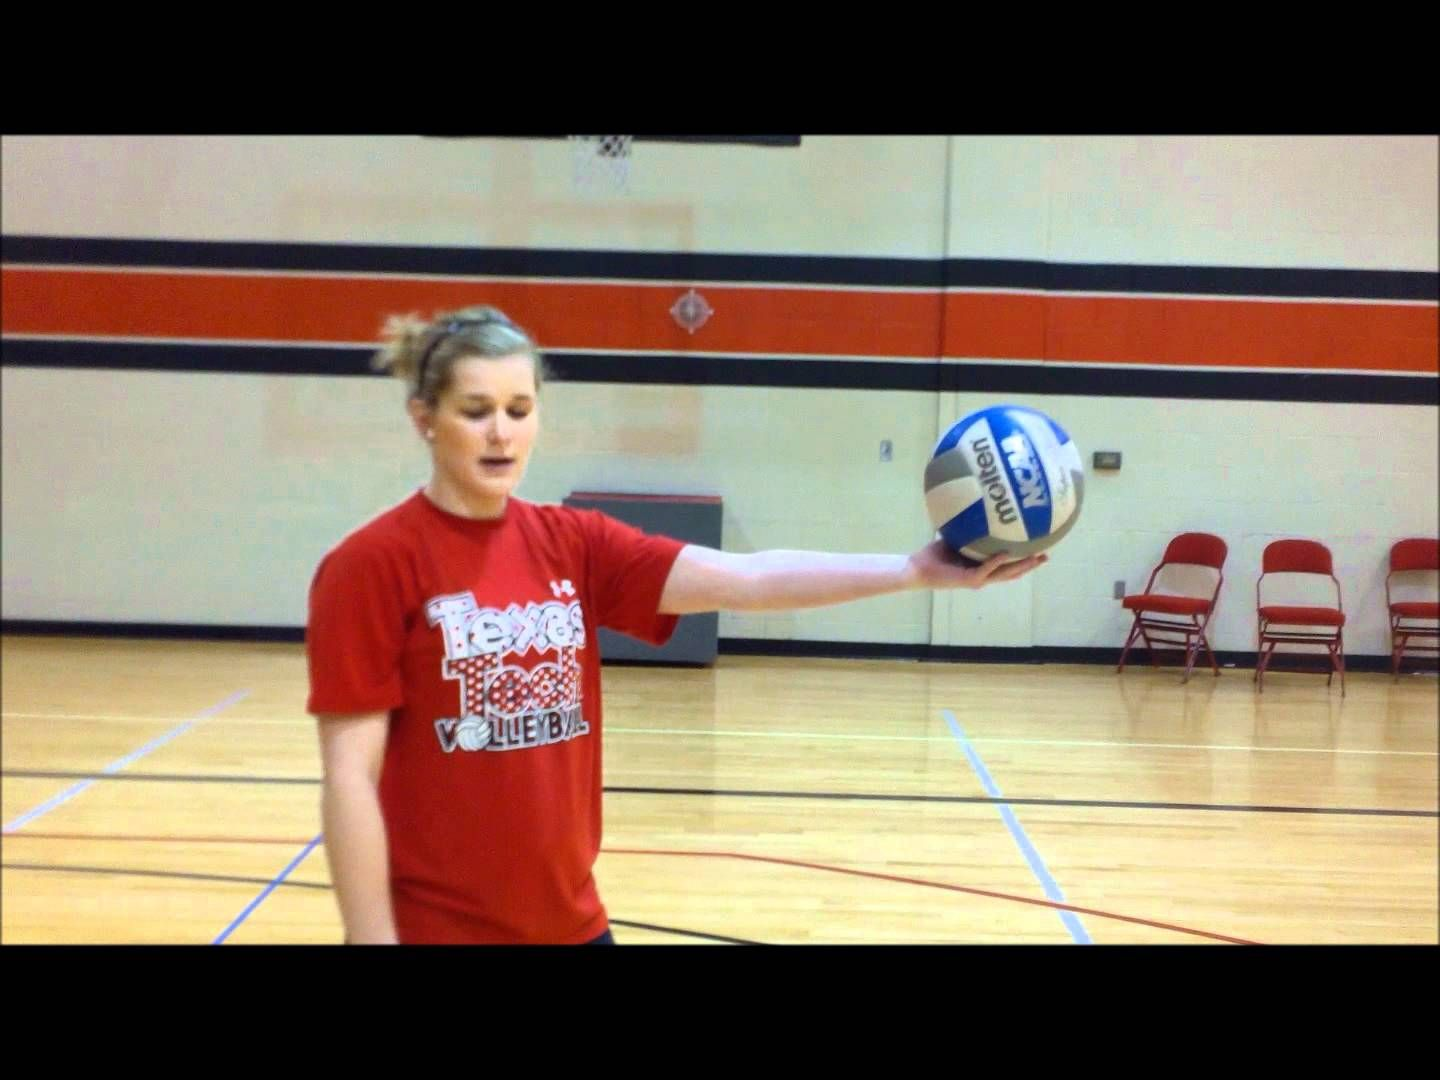 Sheridan Burgess Volleyball Serving Tutorial Volleyball Training Volleyball Workouts Volleyball Practice